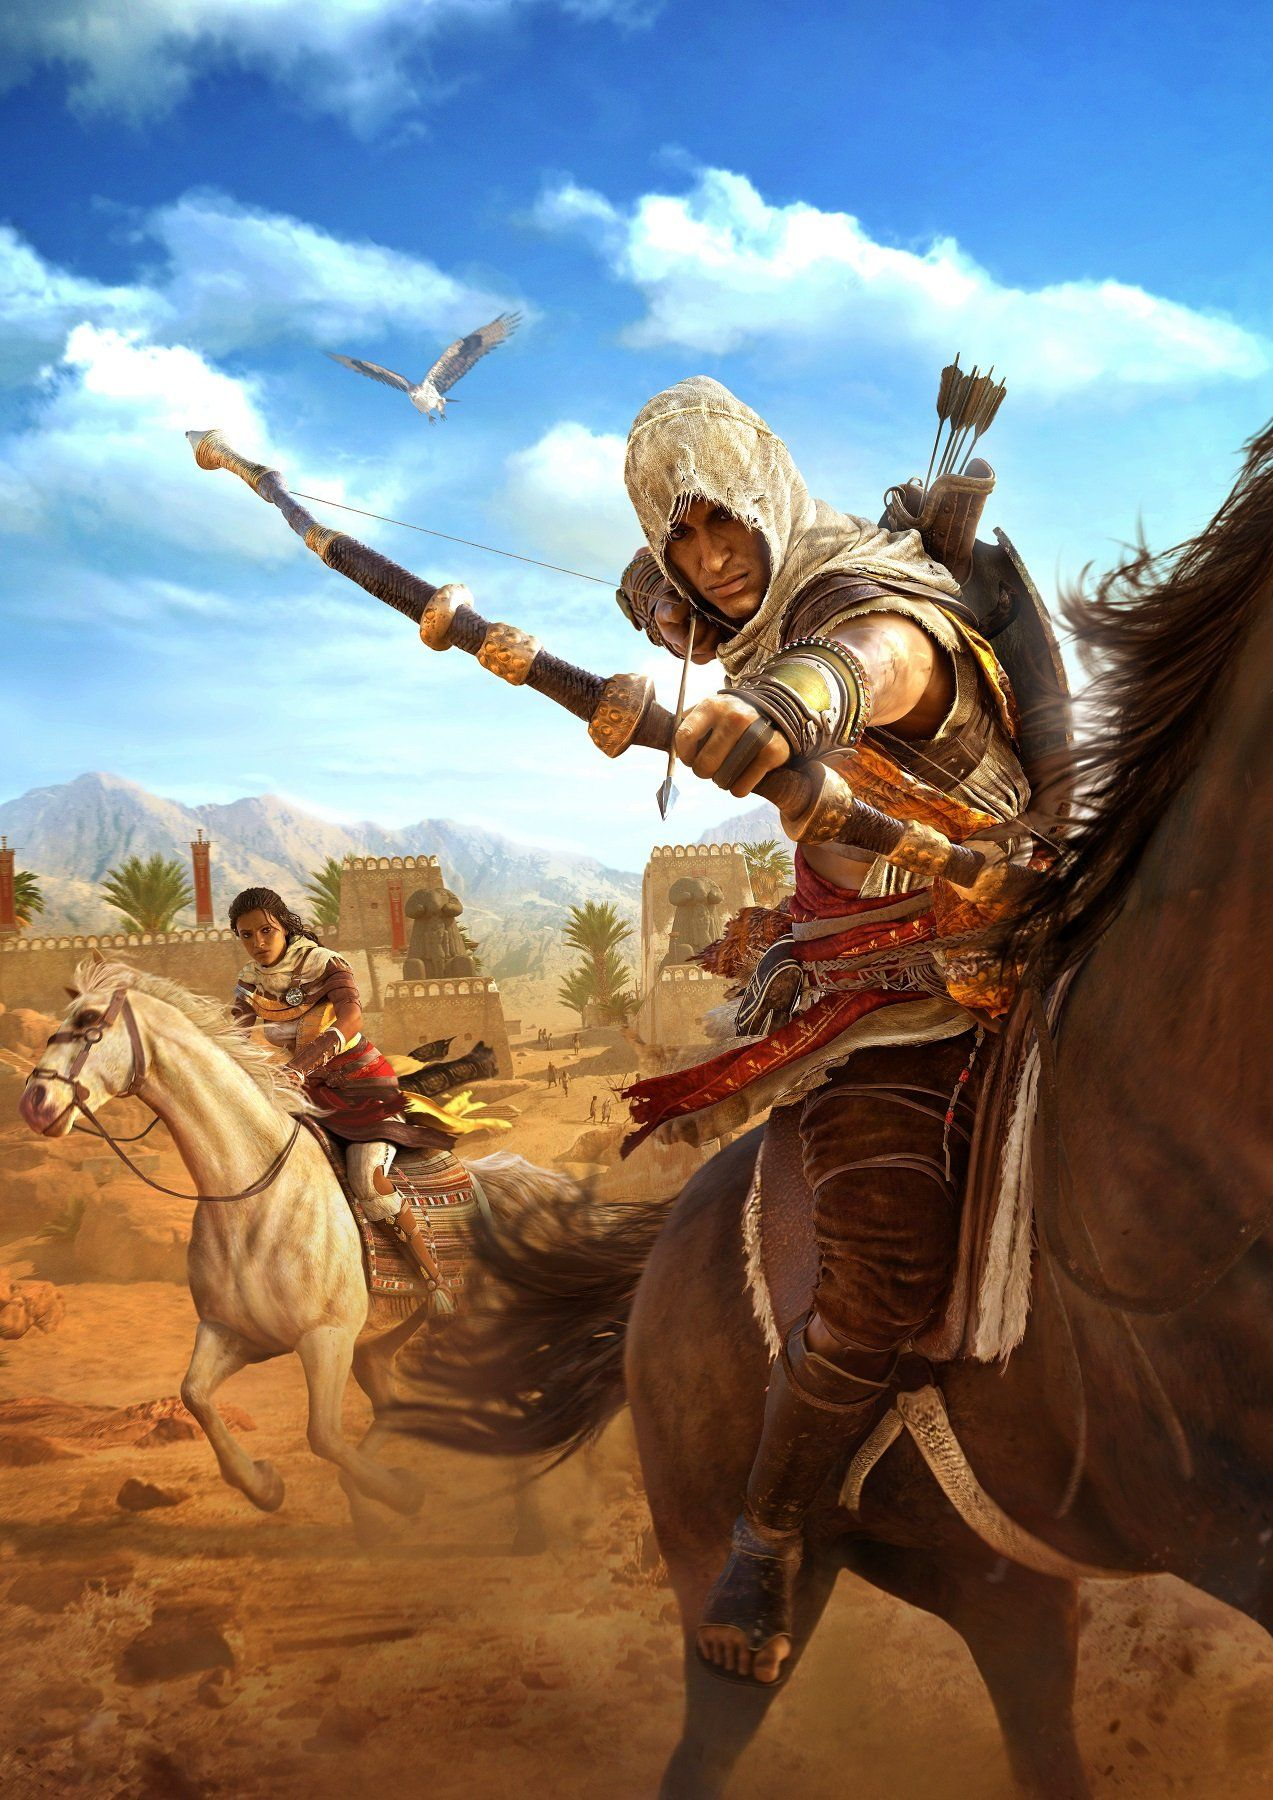 Assassin's Creed Origins Poster Assassin's creed